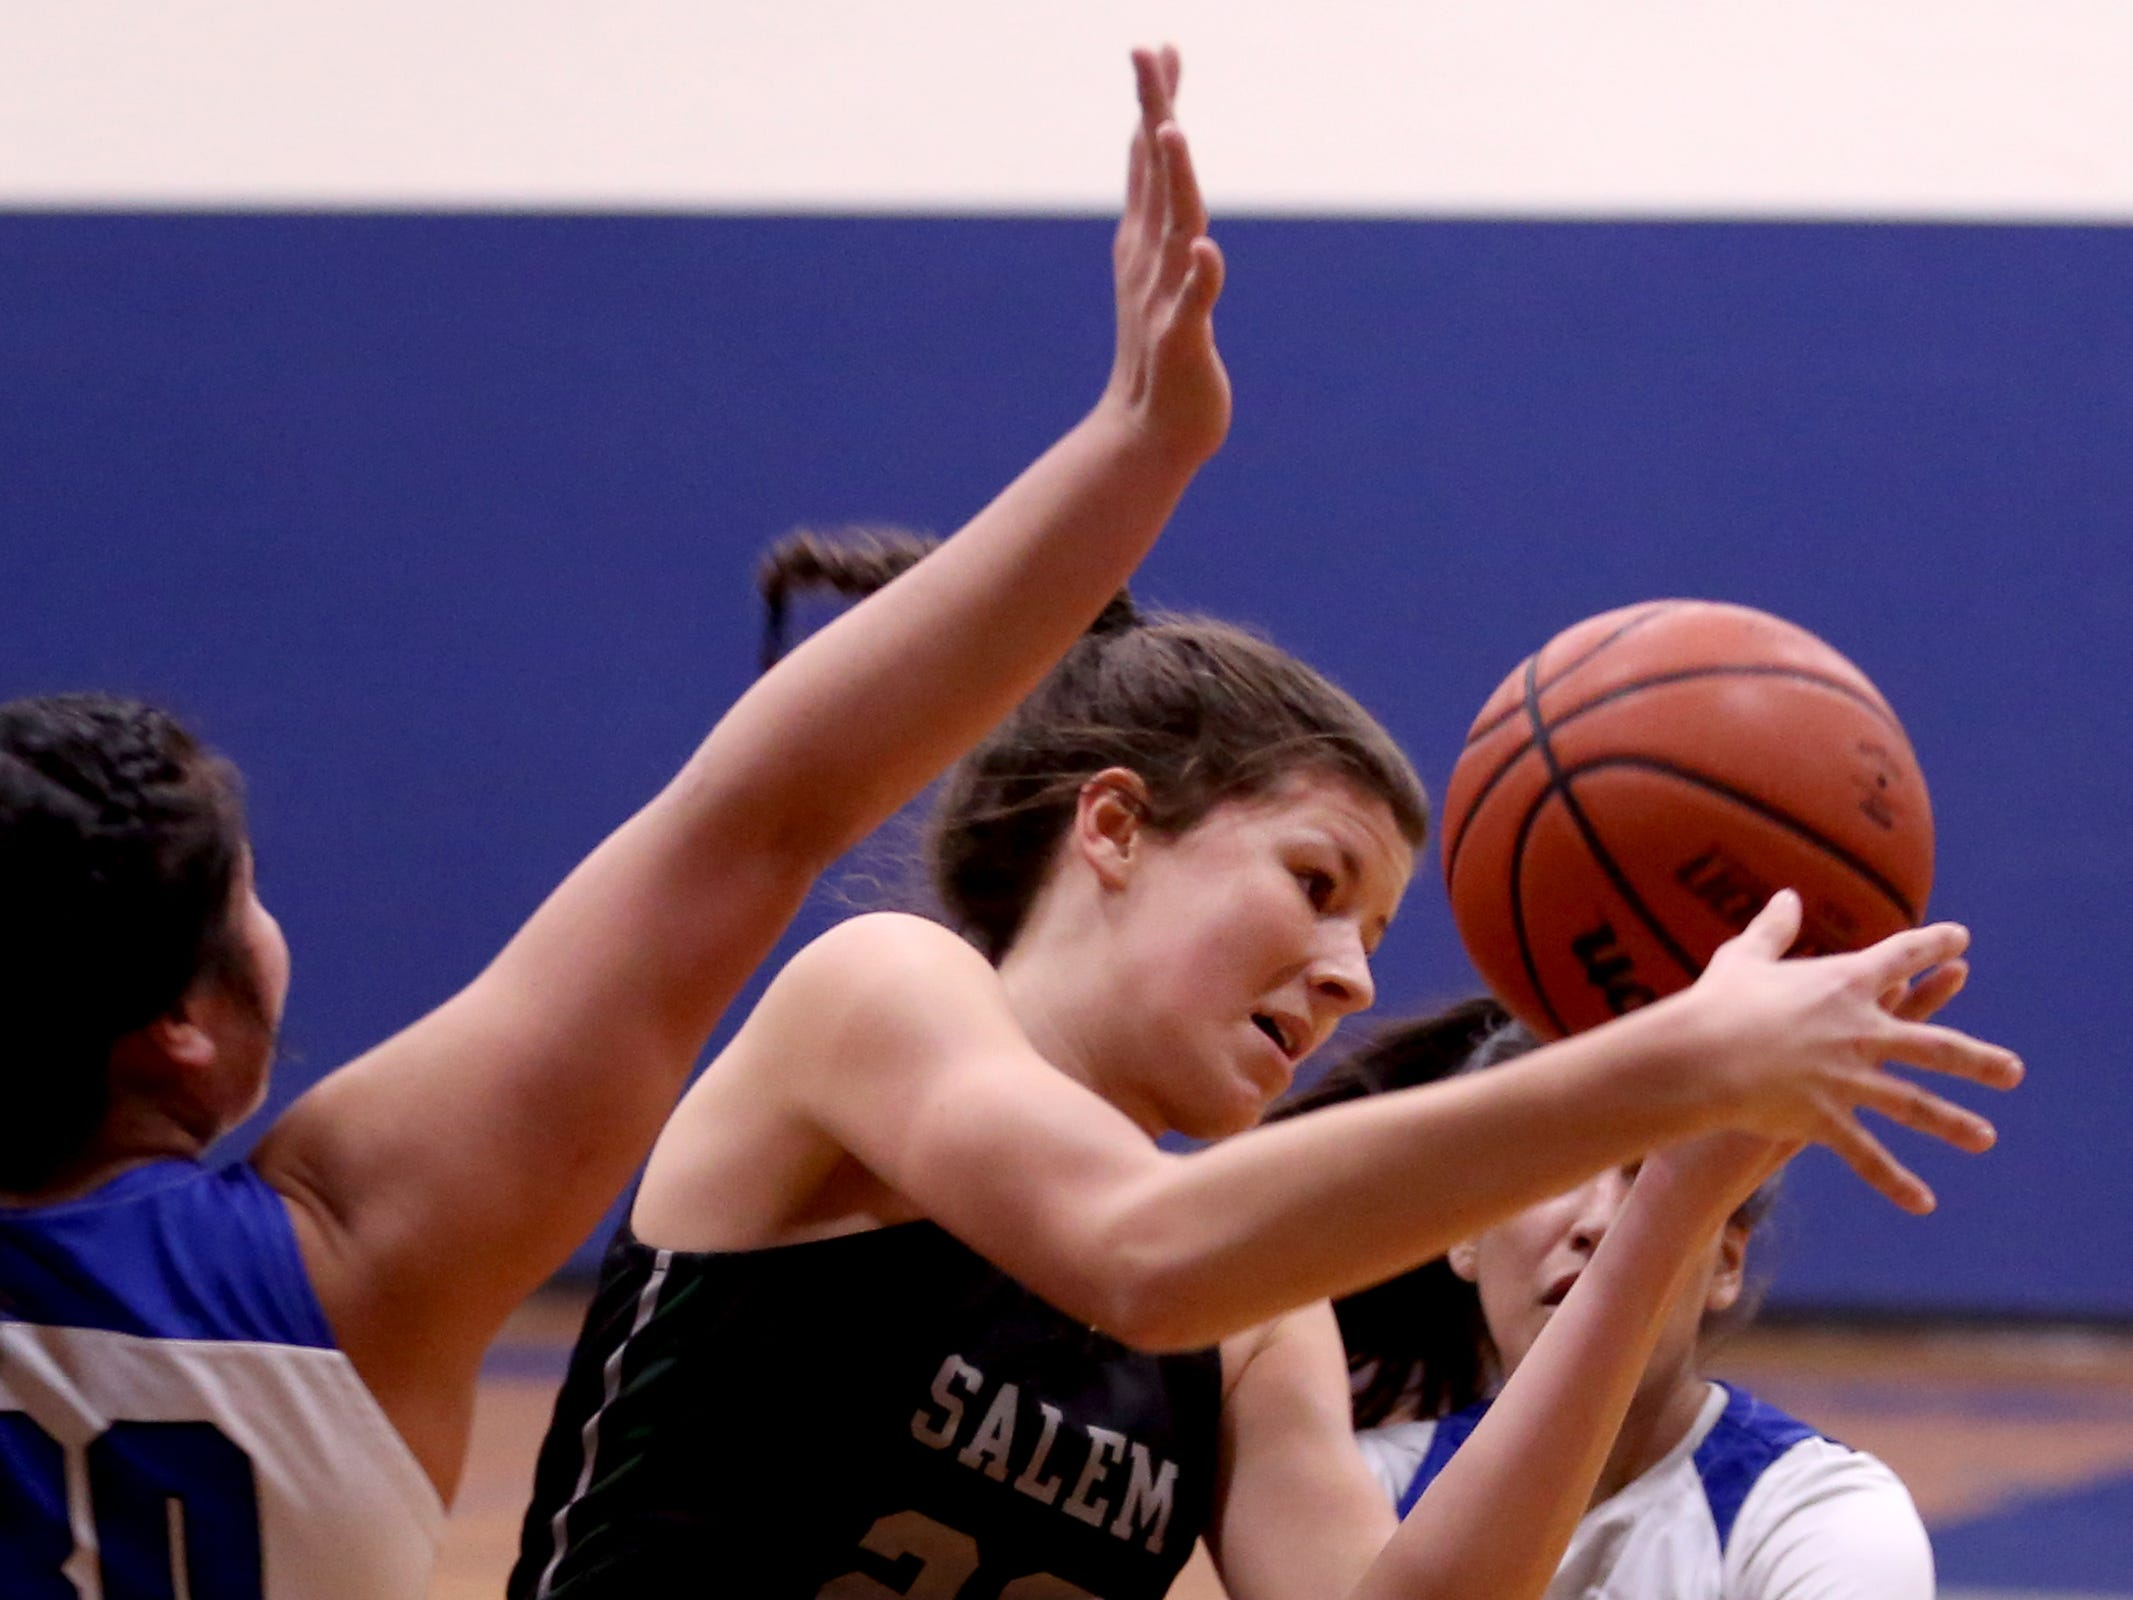 Salem Academy's Chloe Baker (22) grabs a rebound between Blanchet Catholic's Kalea Salang (30) and Ana Coronado (23) in the first half of the Salem Academy vs. Blanchet Catholic girls basketball game at Blanchet Catholic School in Salem on Friday, Jan. 18, 2019. Blanchet Catholic won the gam 48-40.